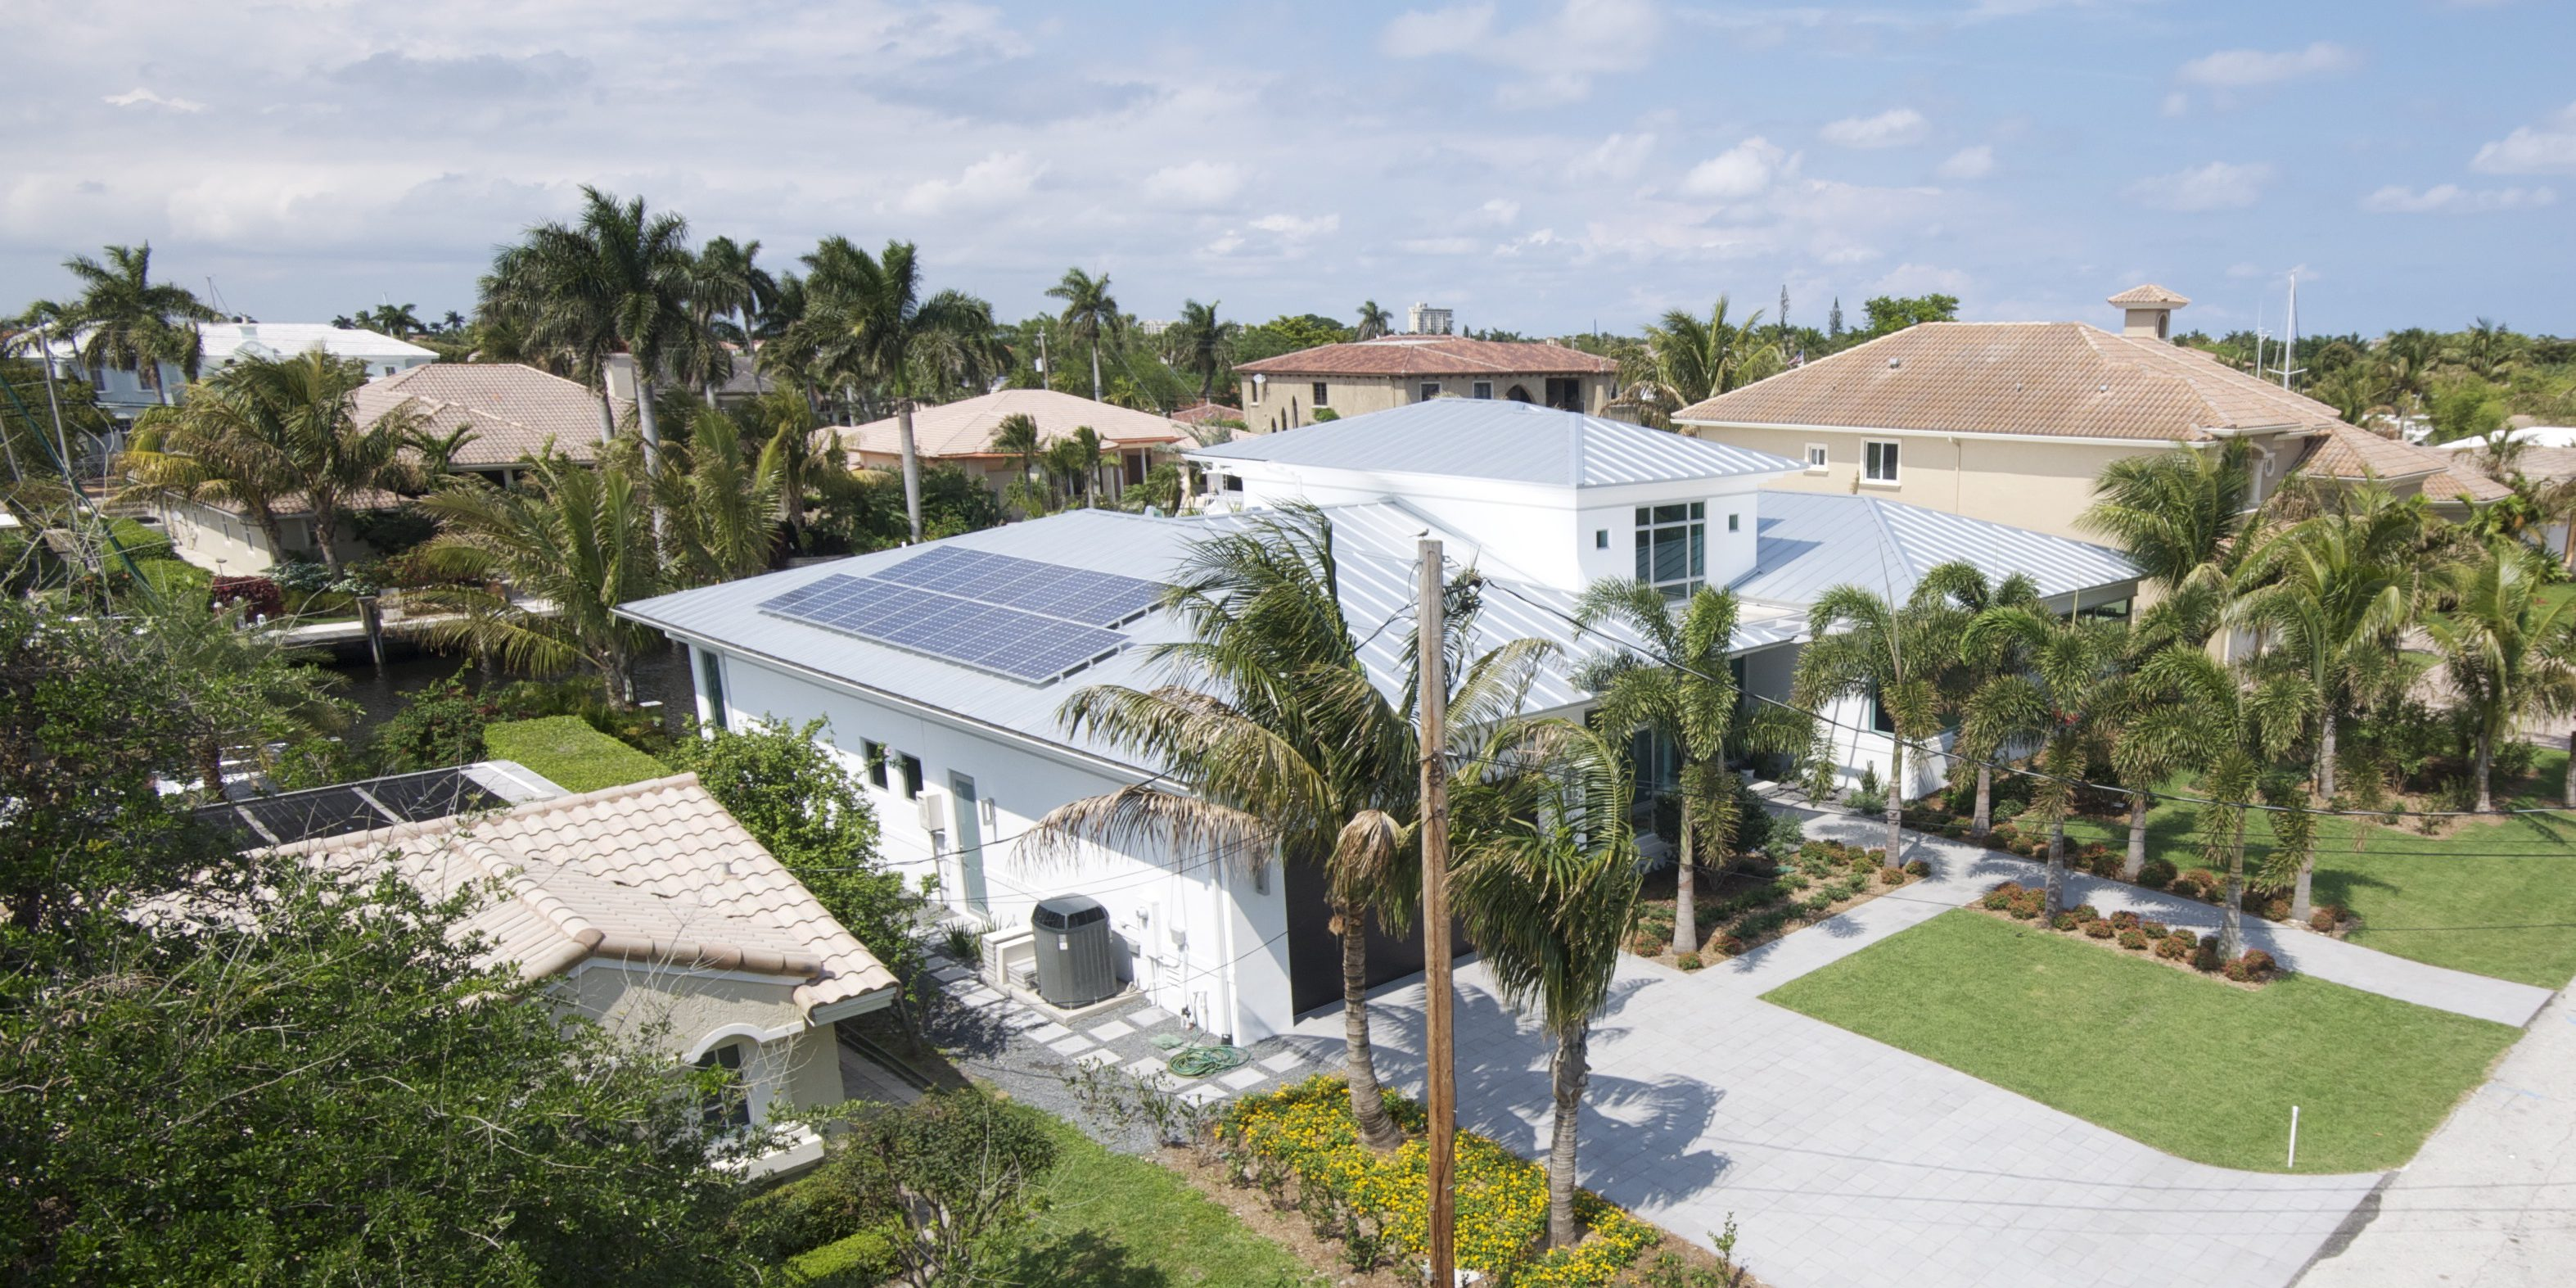 Florida utilities want to gut solar. Here's why  image